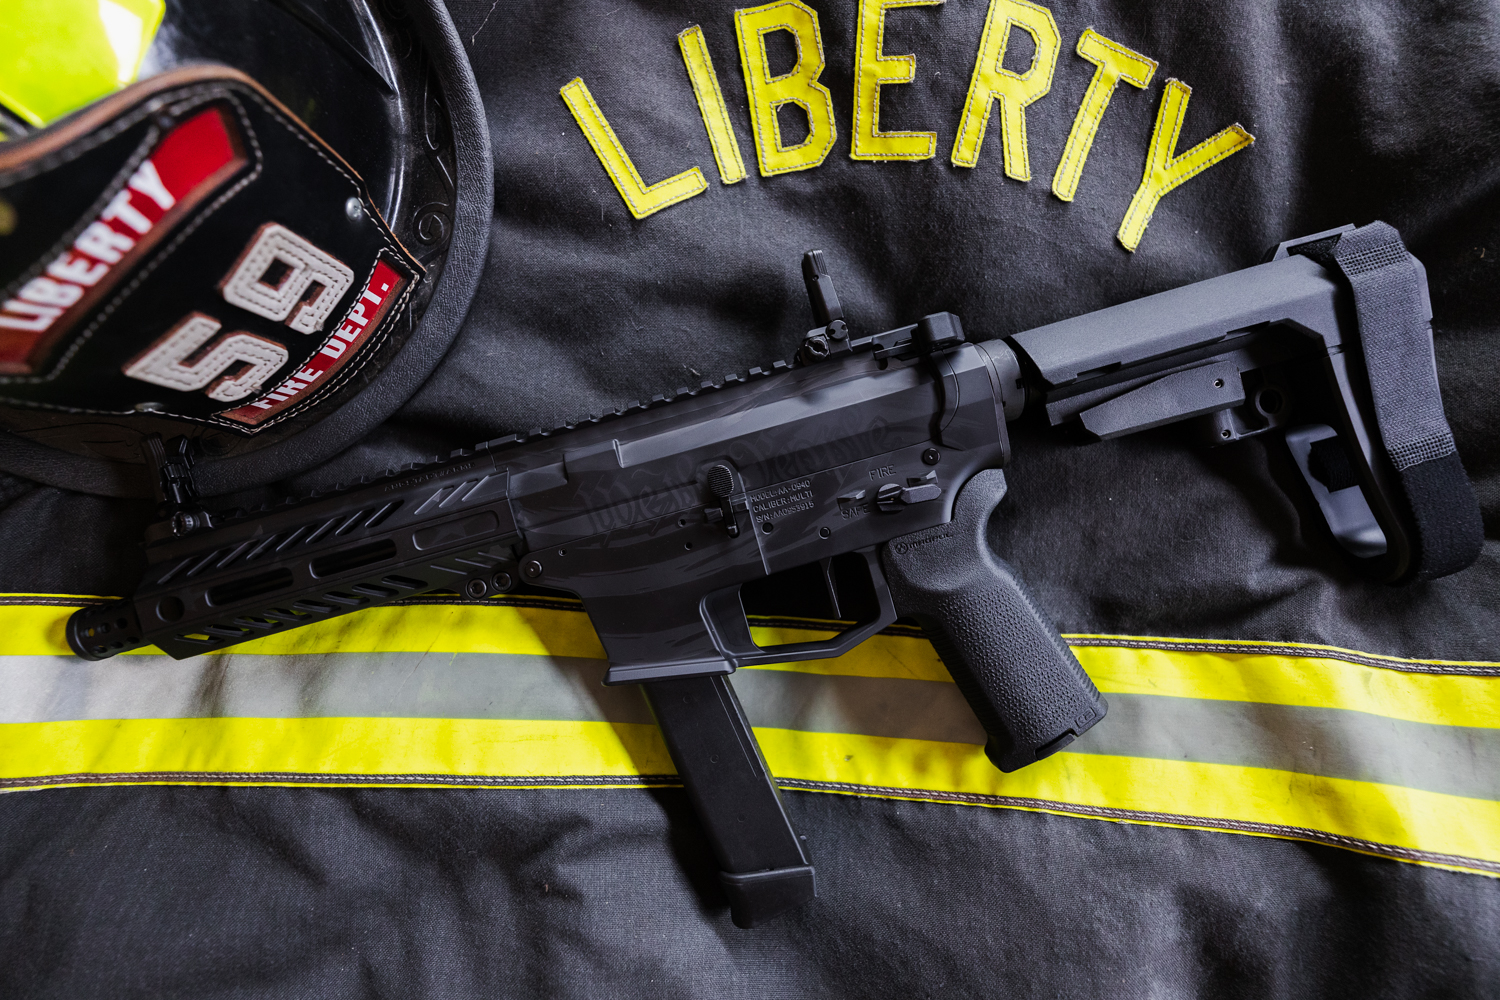 ANGSTADT ARMS RELEASES LIMITED EDITION WE THE PEOPLE UDP-9 PISTOL